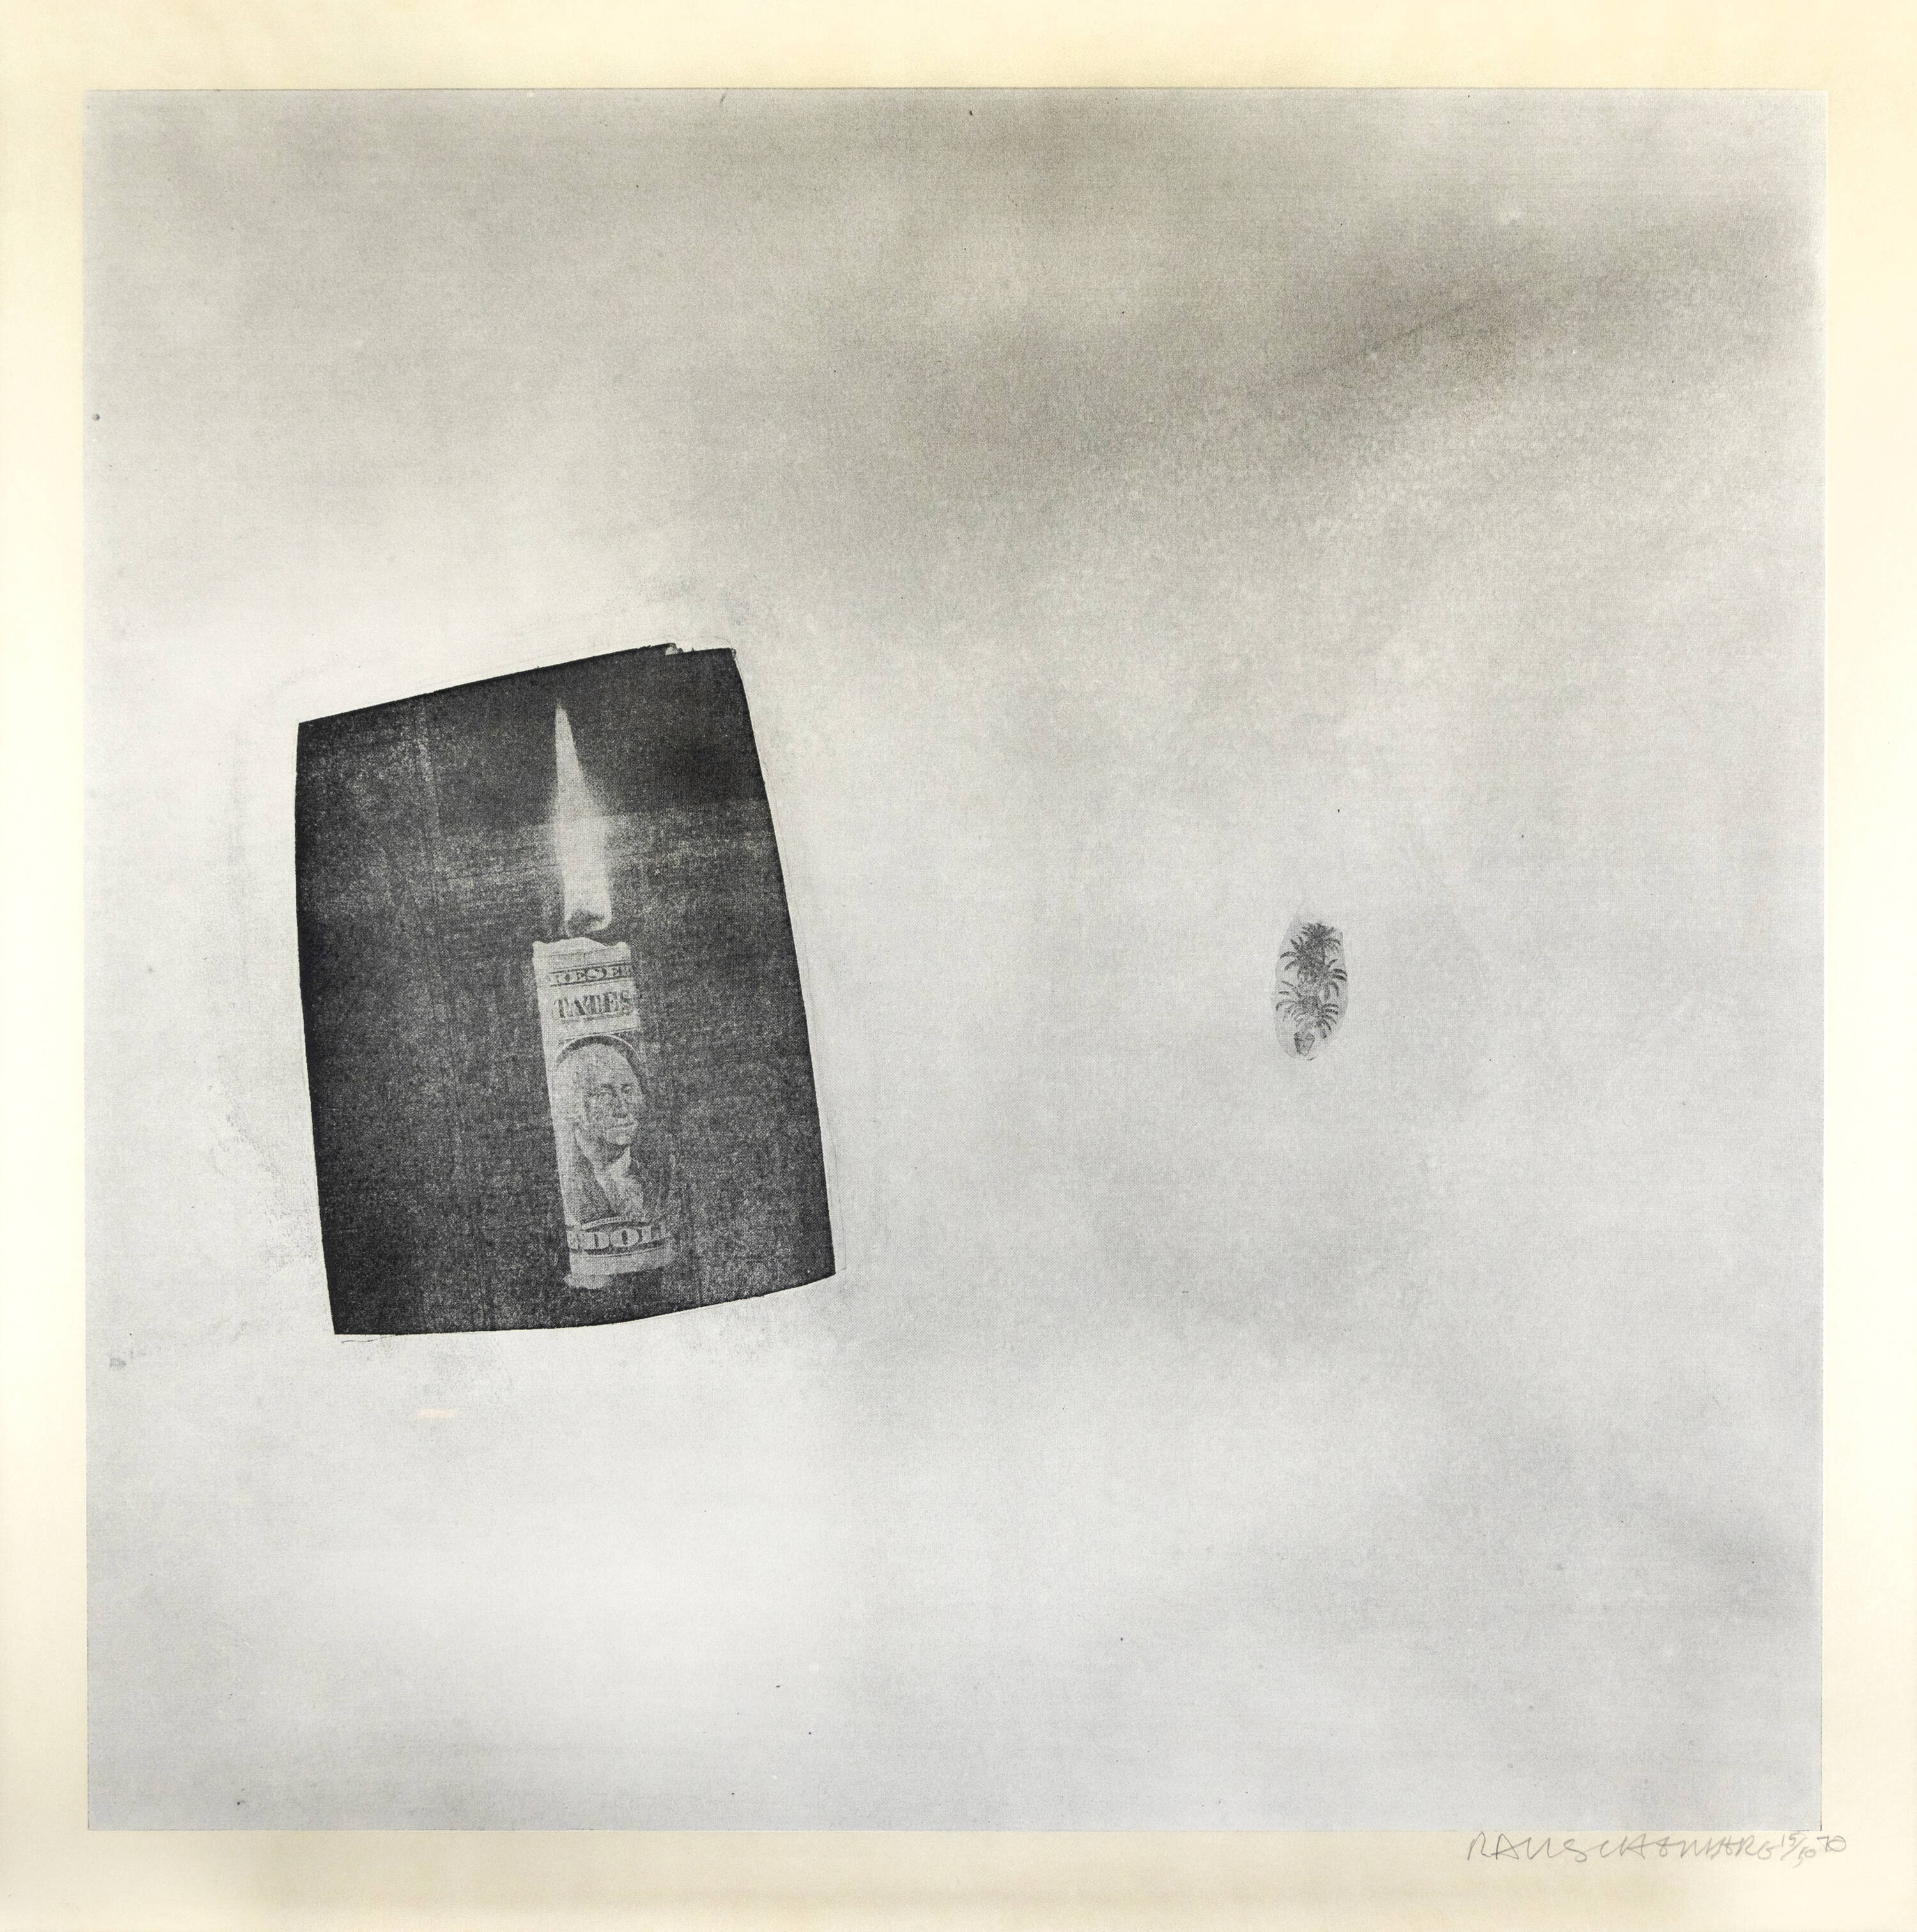 ROBERT RAUSCHENBERG - 'Features (from Currents)' 1970